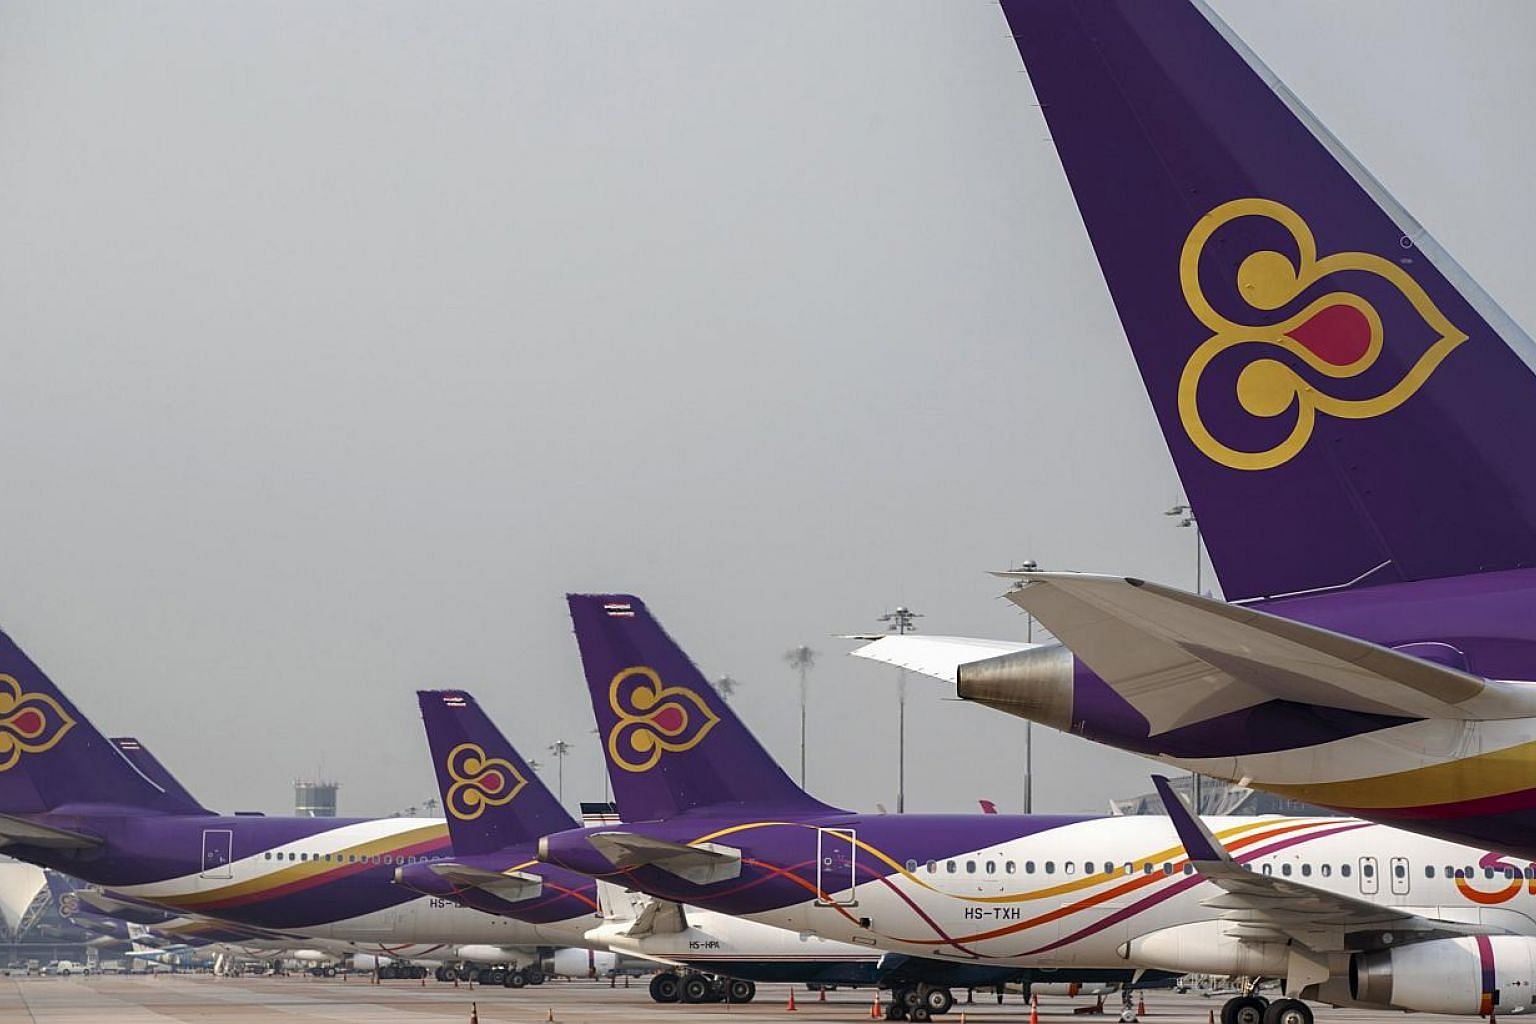 Japan's civil aviation agency has lifted a charter flight ban for Thai-registered airliners during April and May to help ease the impact on passengers, Thailand's Transport Minister, Air Chief Marshall Prajin Juntong, said on Wednesday, April 1, 2015